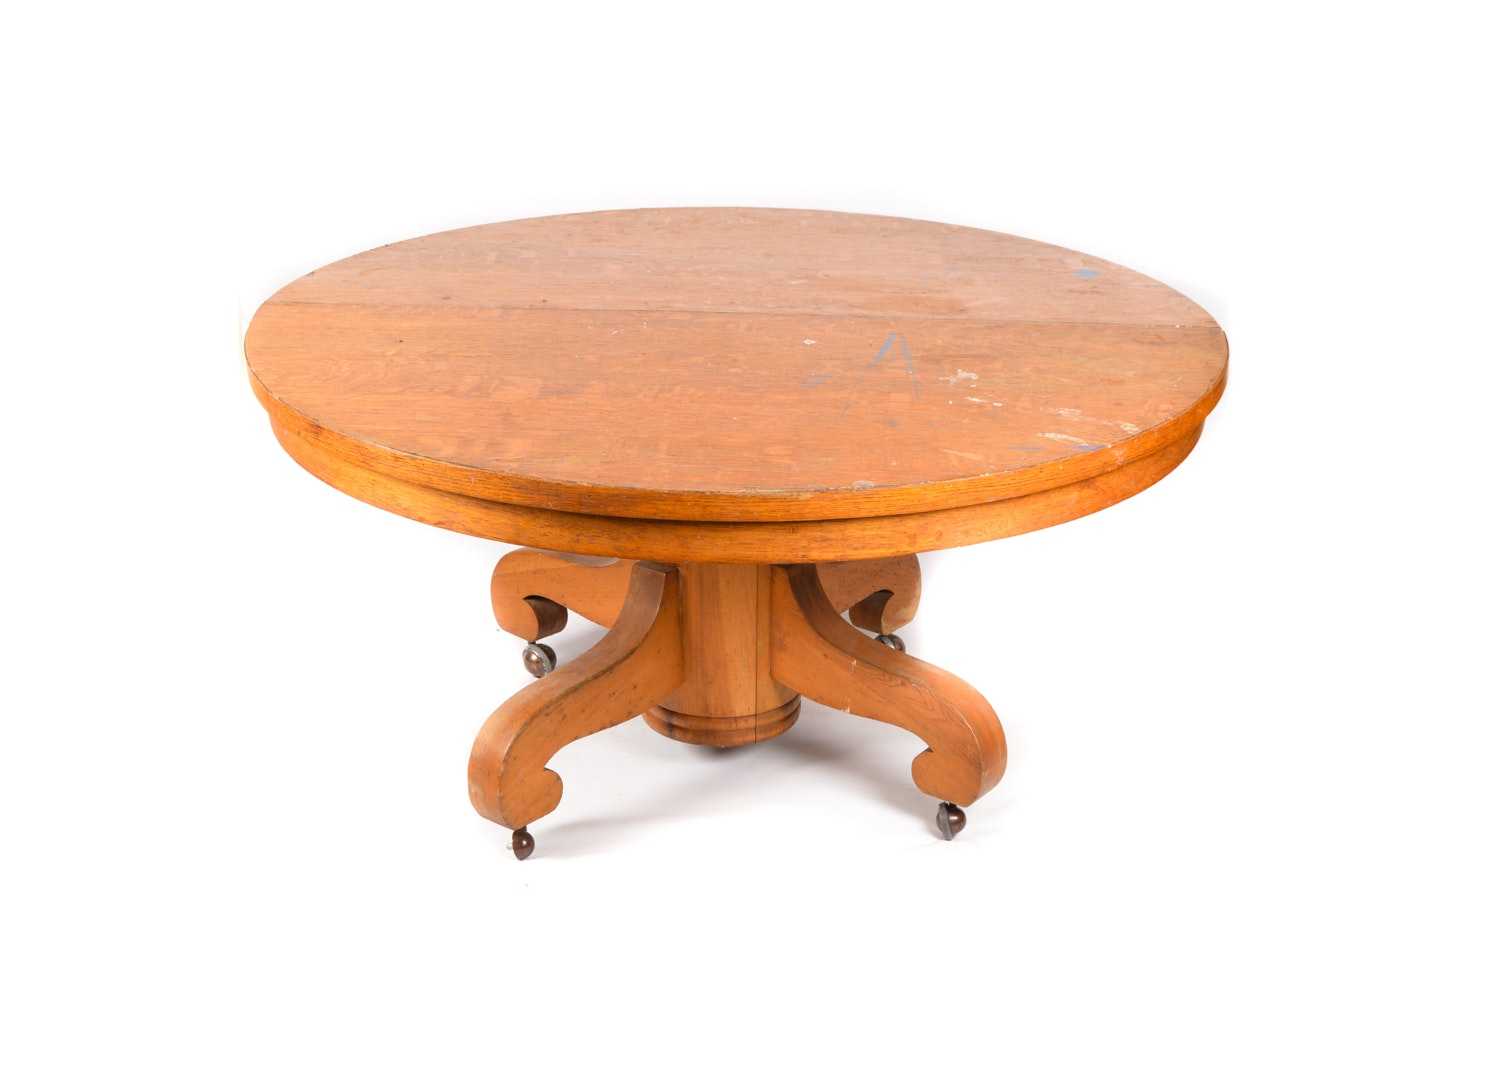 American Empire Style Oak Pedestal Dining Table on Casters, Early 20th Century